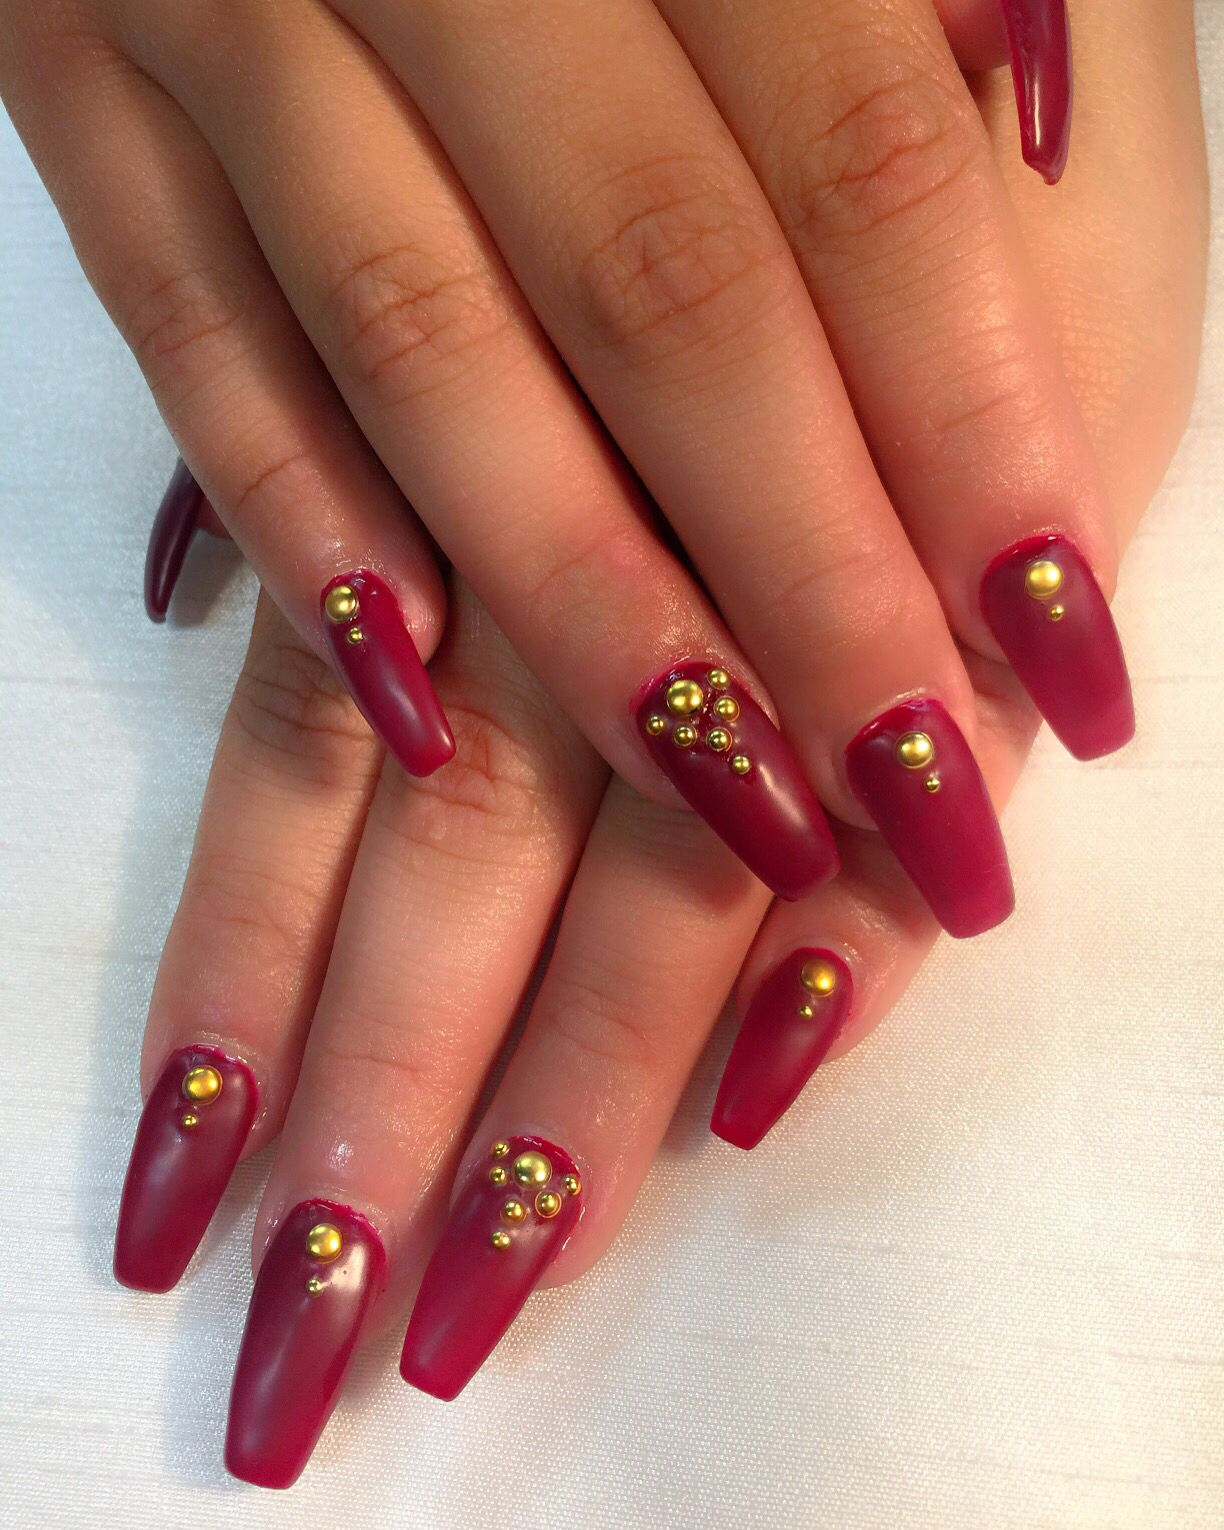 Matte redcoffin nailsclawsgold studspro nails nail art matte redcoffin nailsclawsgold studspro nails prinsesfo Images